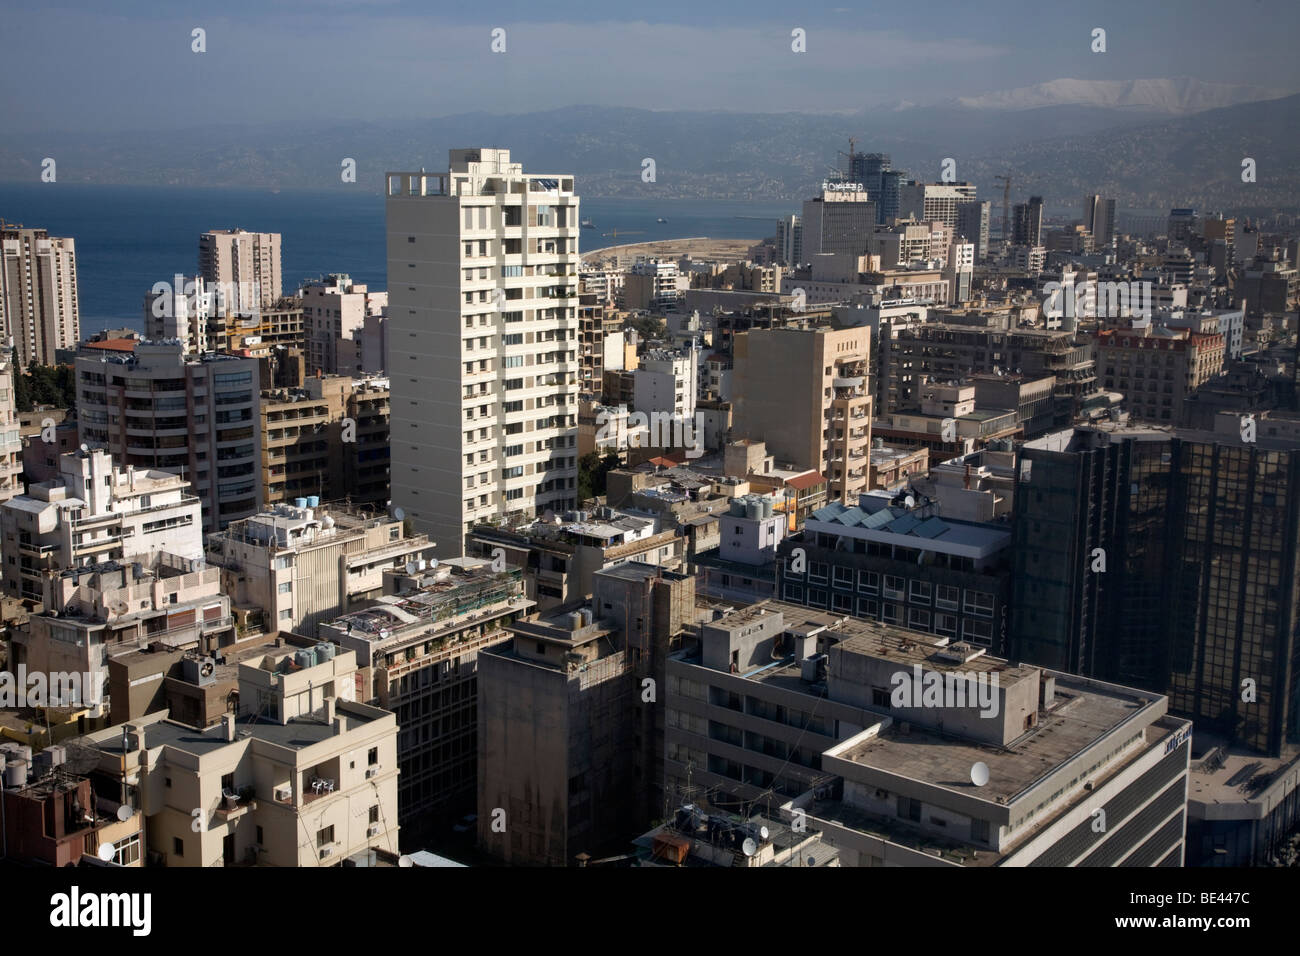 Vue de Beyrouth inox marquetterie District commercial blocs Appartement Beyrouth Liban Photo Stock